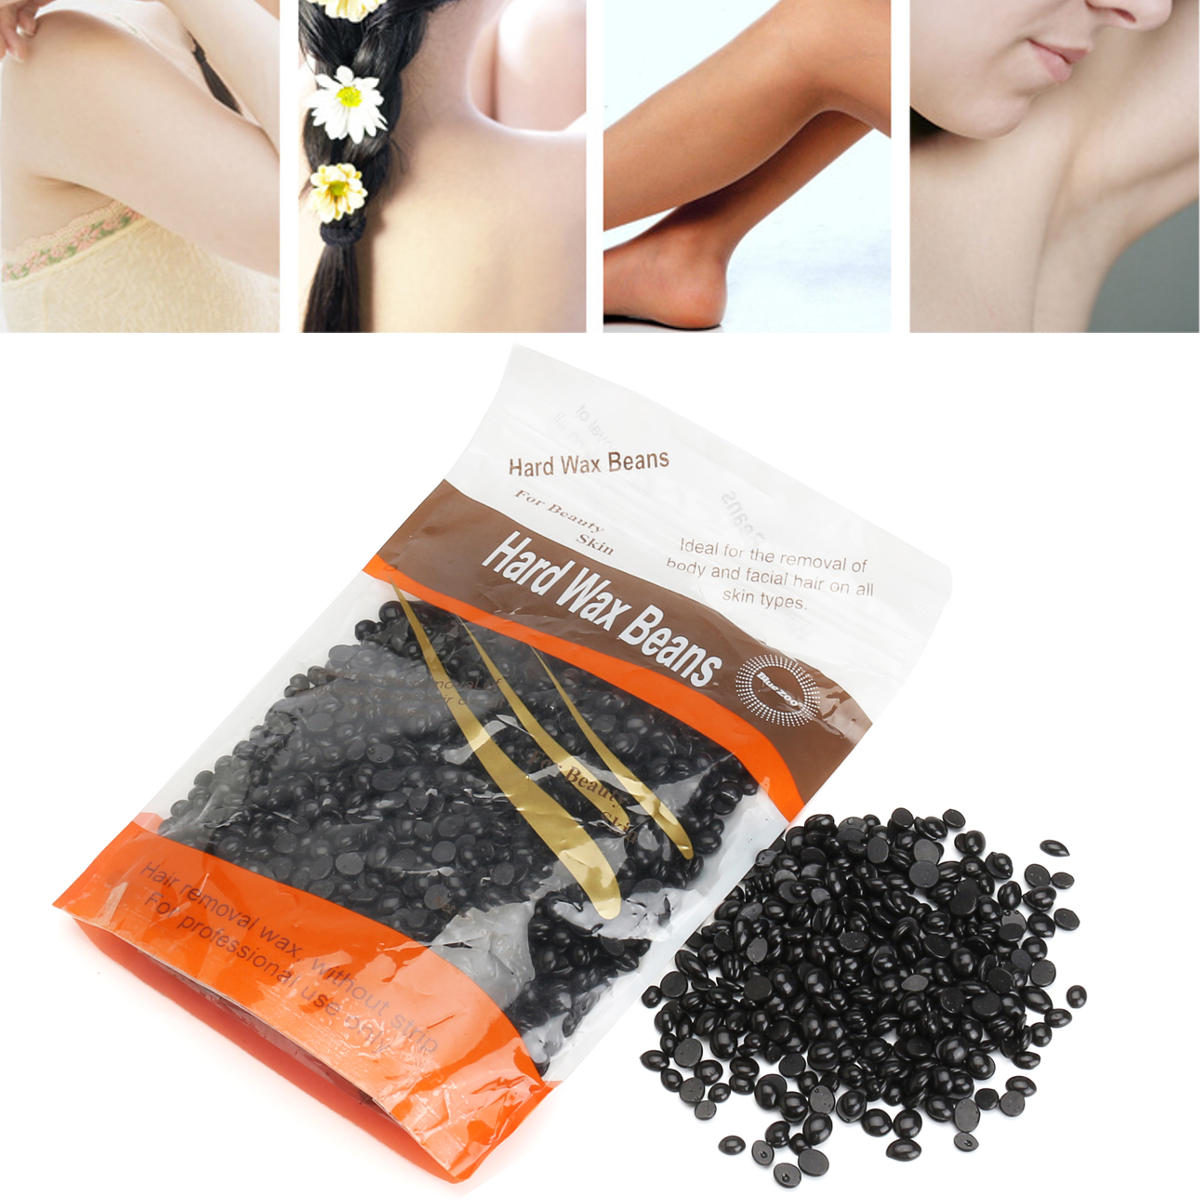 Depilatory Hot Film Black Bikini Hard Wax Beans Hair Removal No Strip